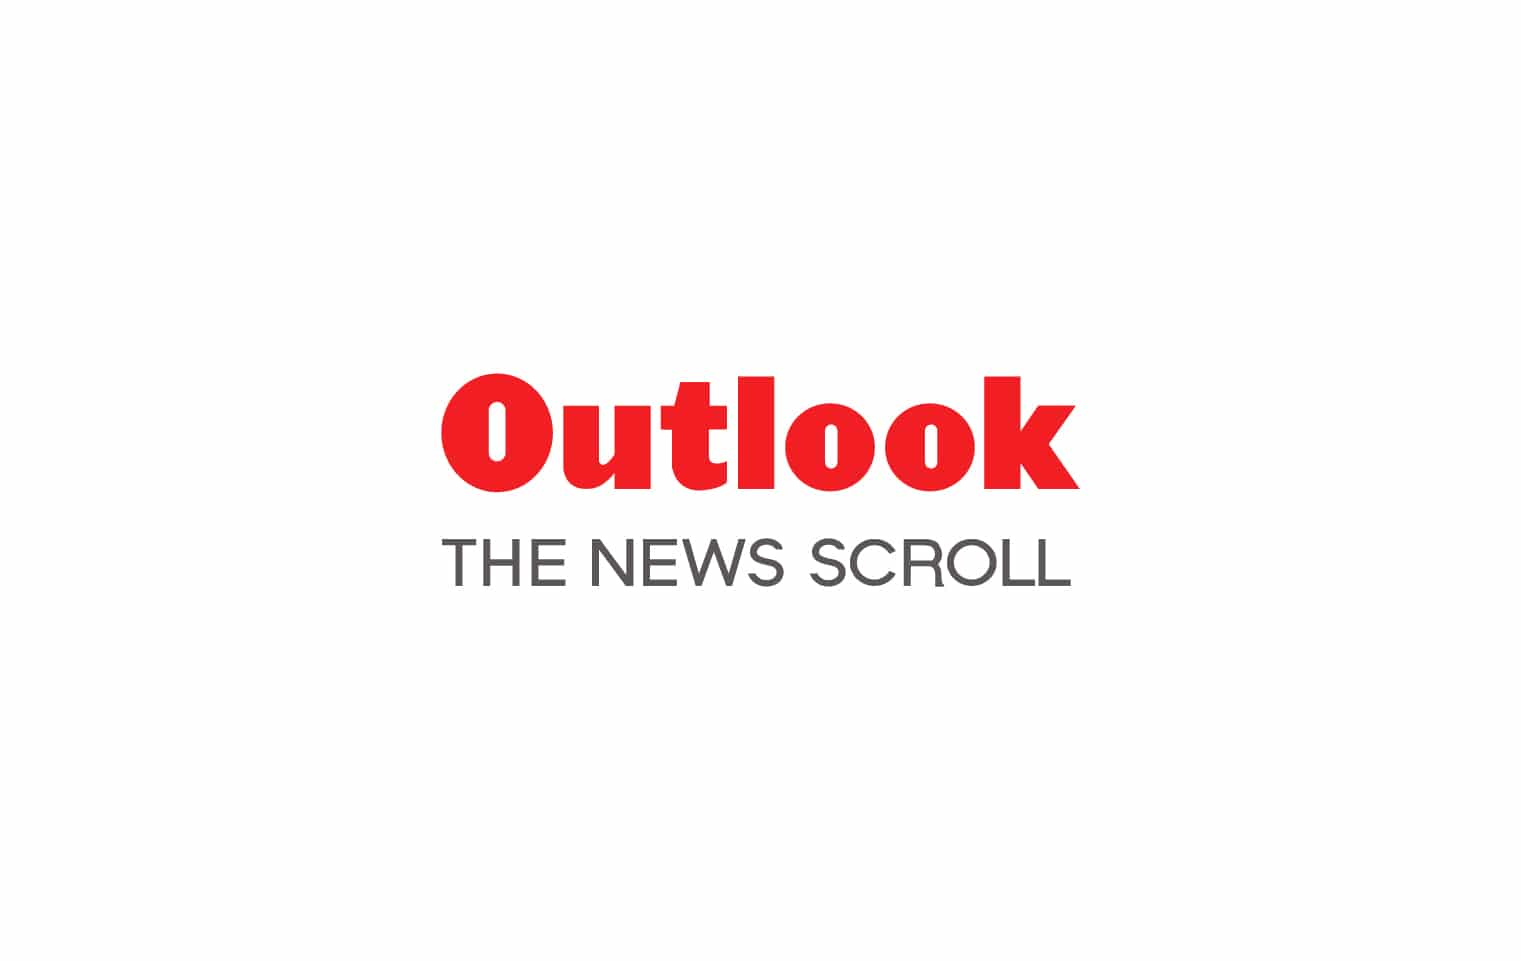 Outlook features WeCP (We Create Problems)